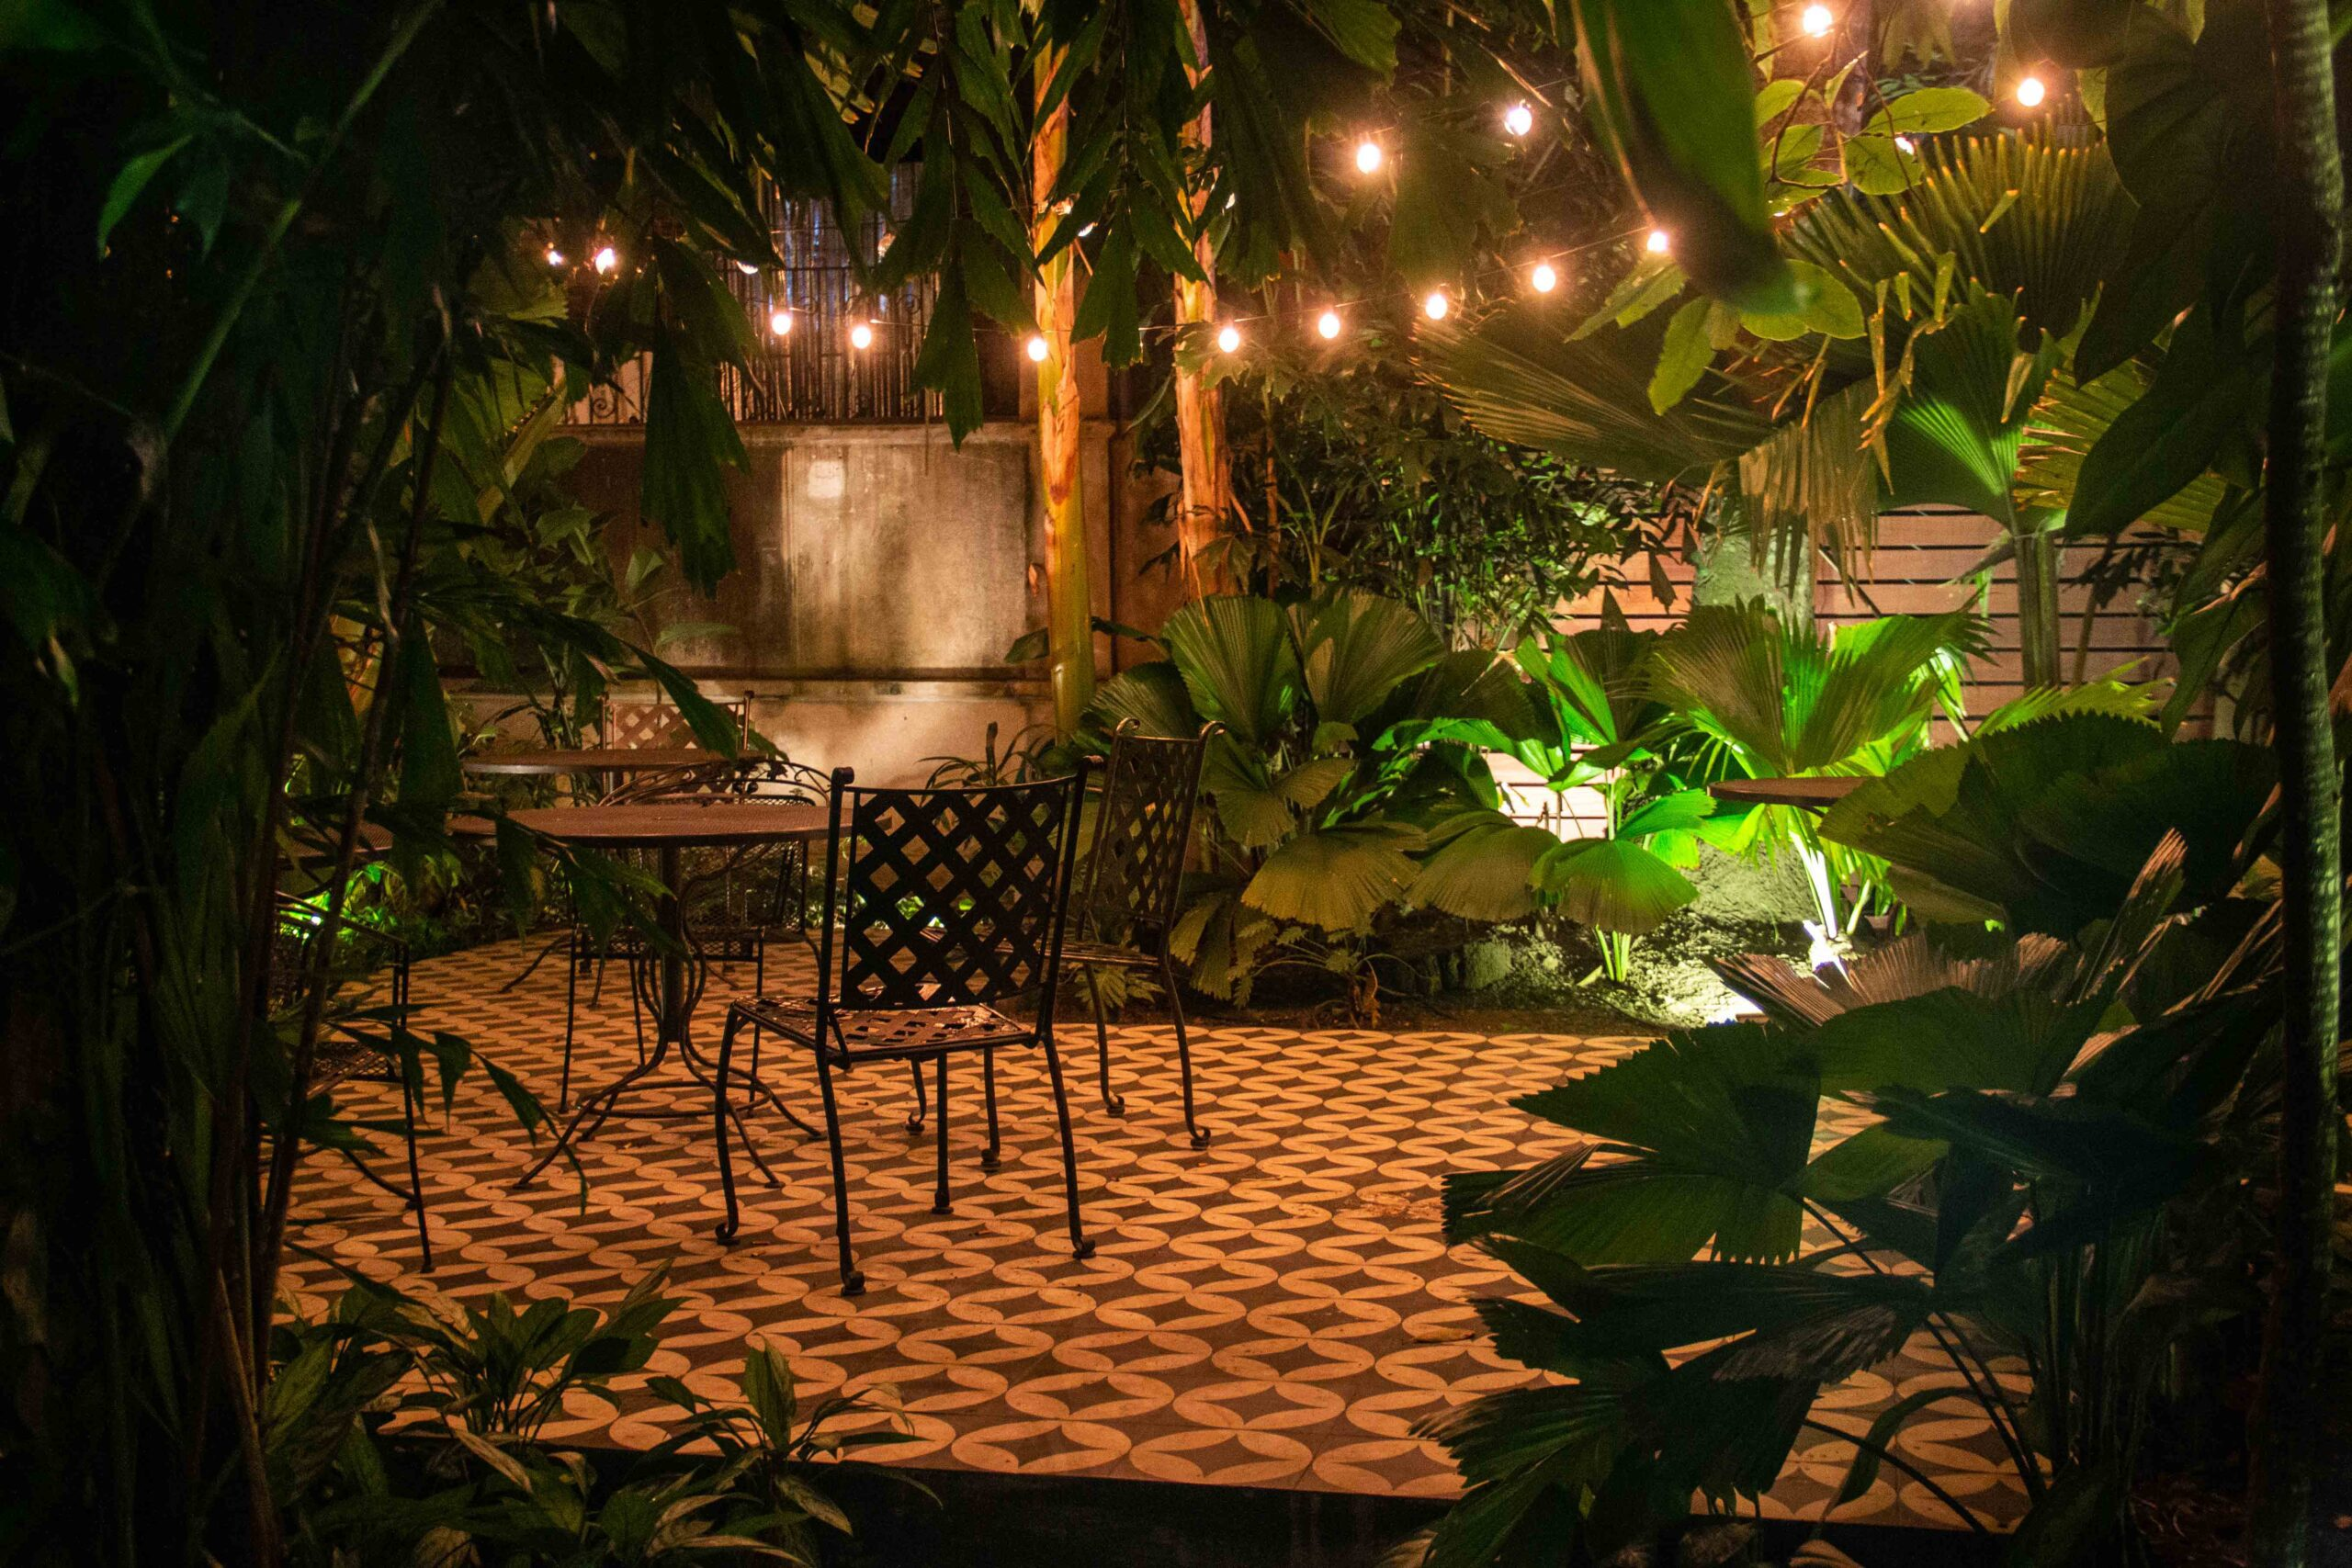 Las Clementinas garden by night Panama City